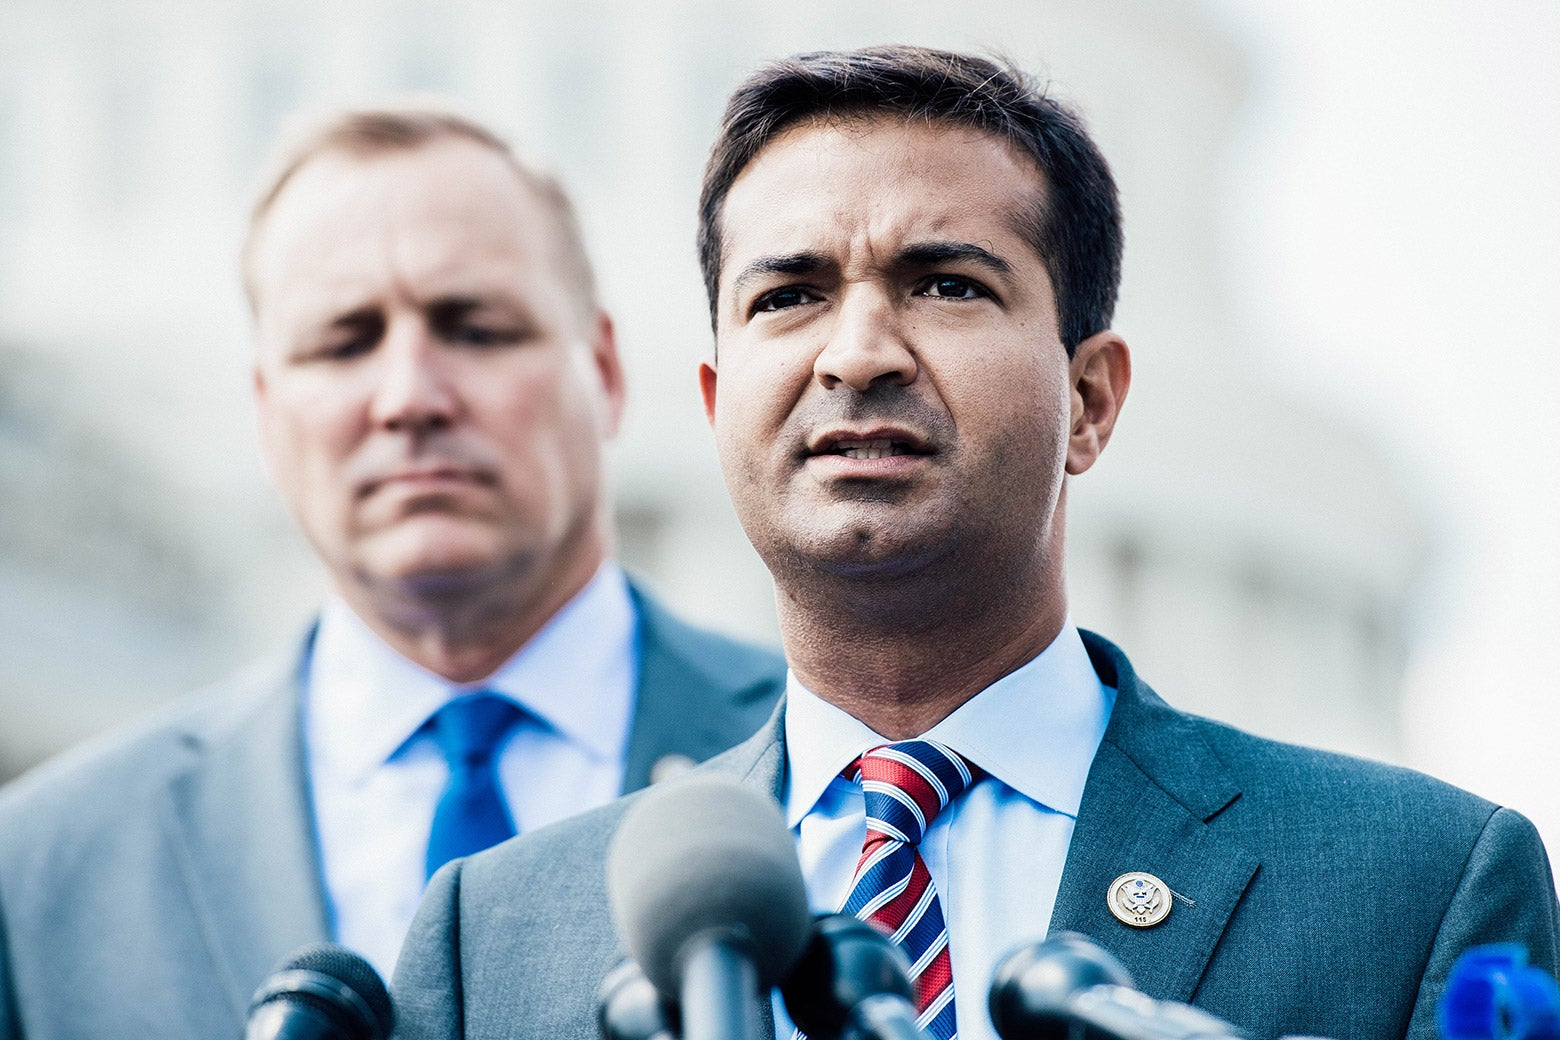 Florida Rep. Carlos Curbelo holds a news conference on immigration reform at the Capitol on Wednesday.